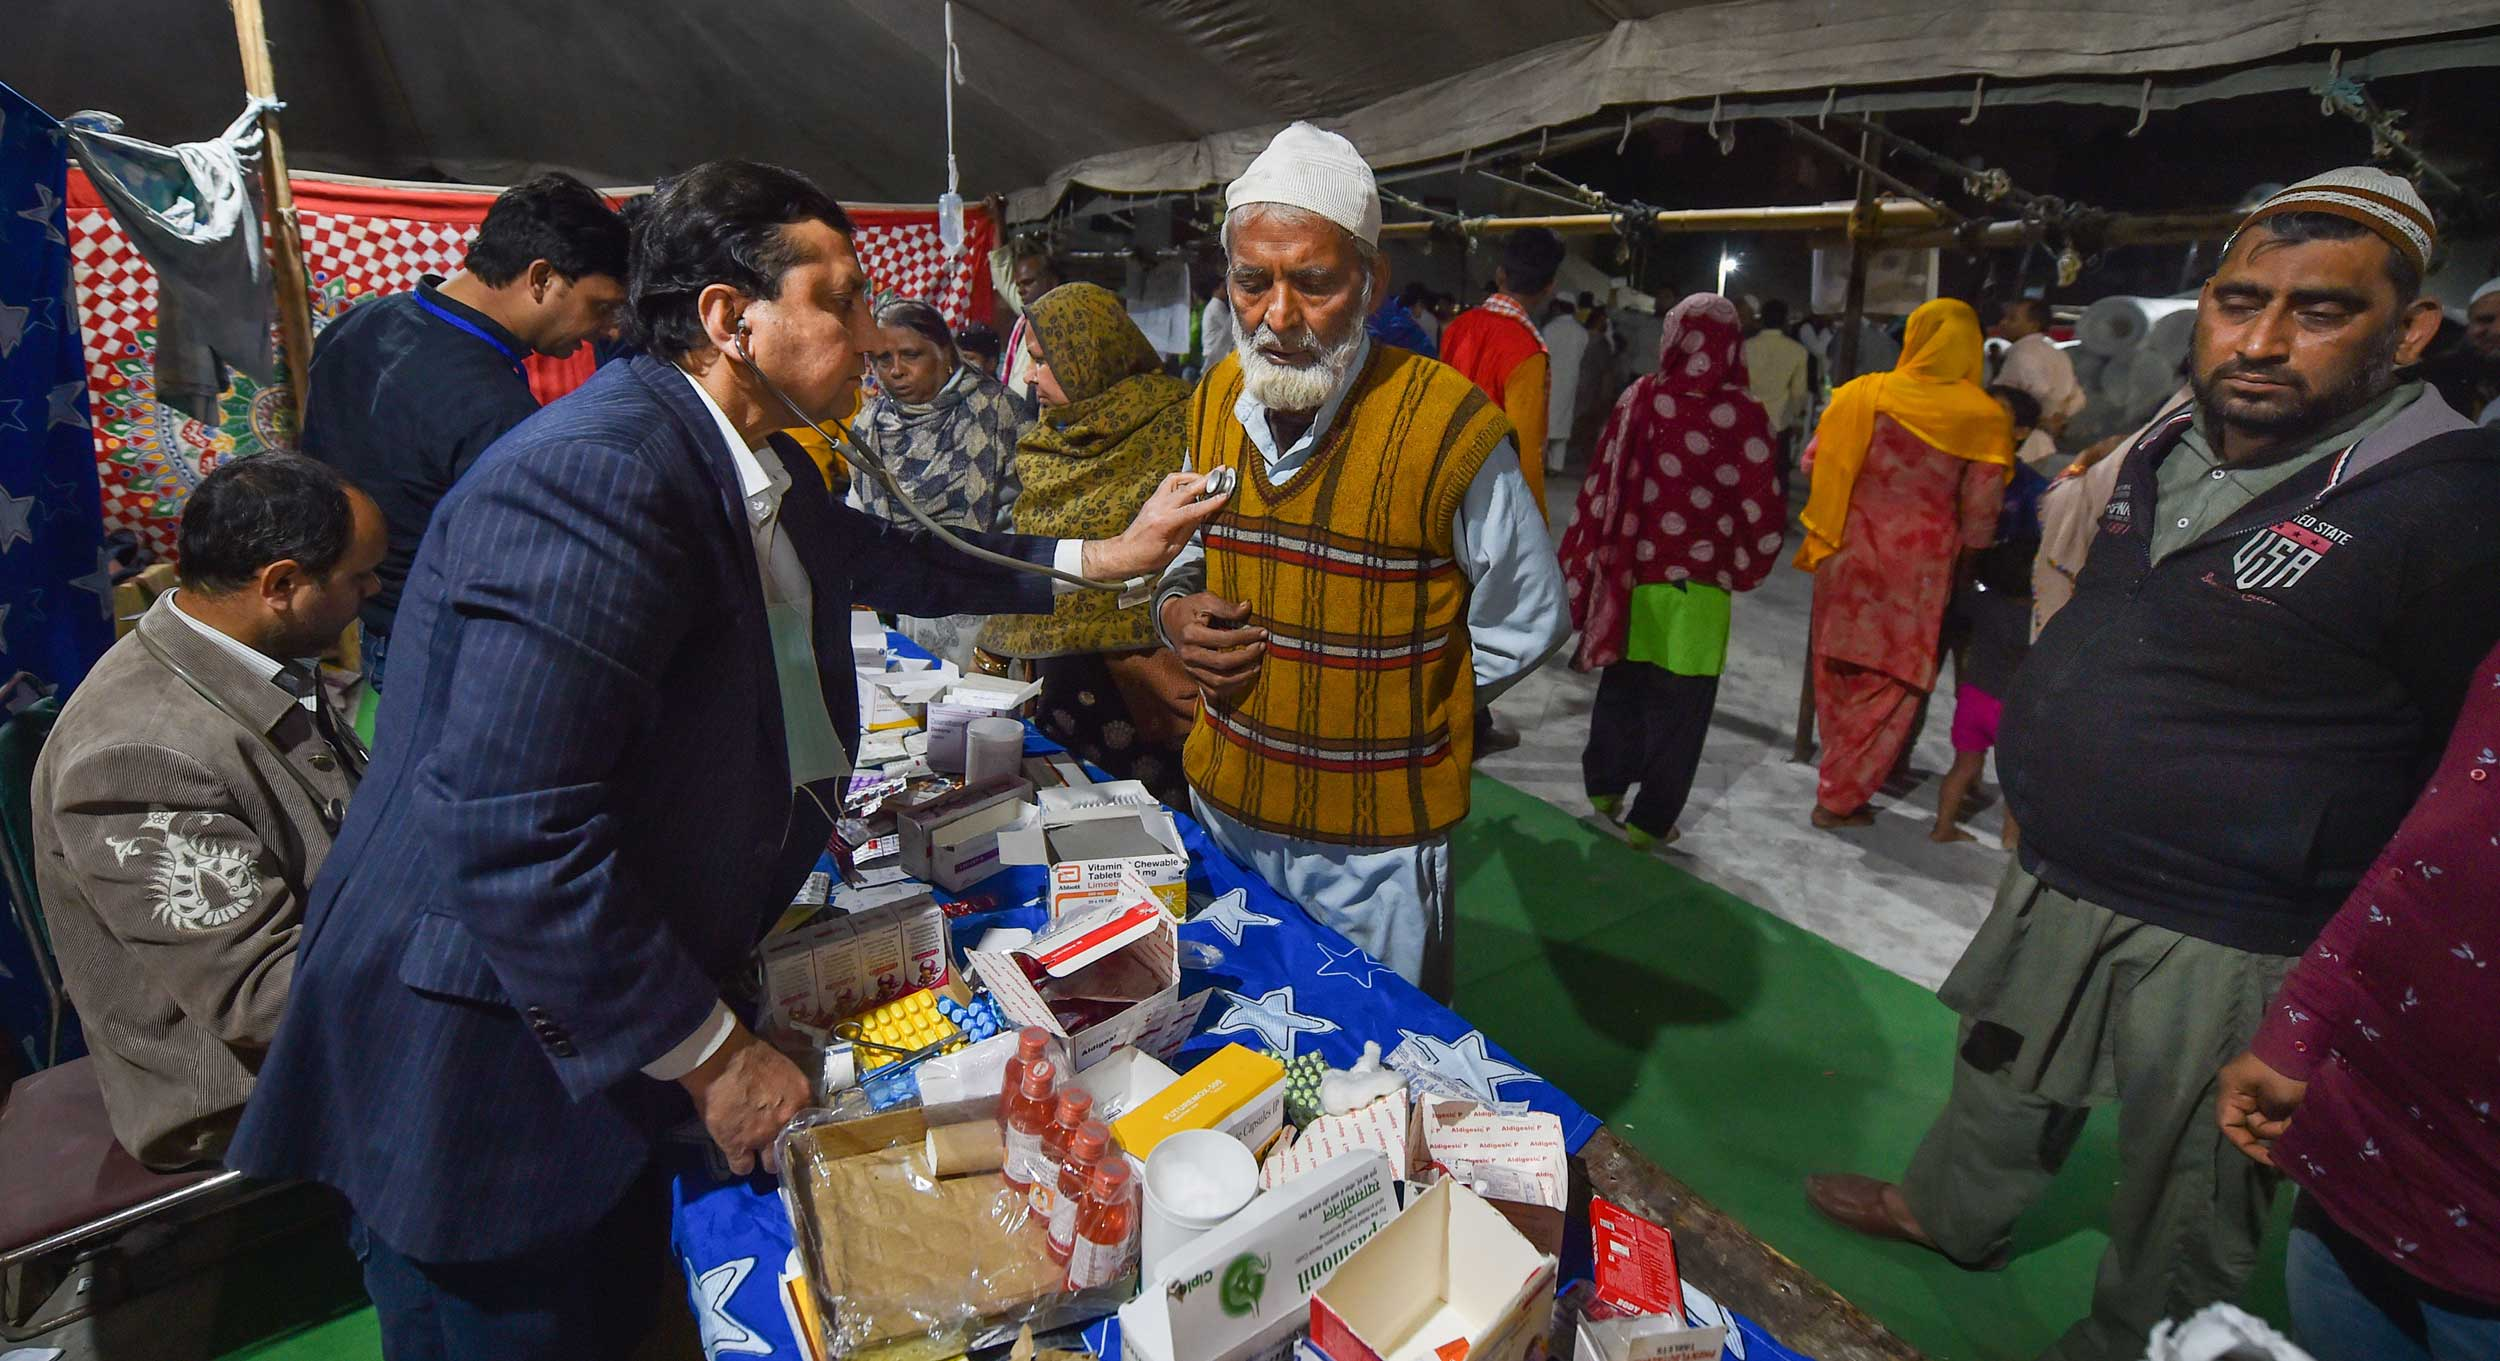 Members of Doctors Unity Welfare Association distribute medicines to people affected in the riots at eidgah relief camp in Mustafabad on Tuesday.